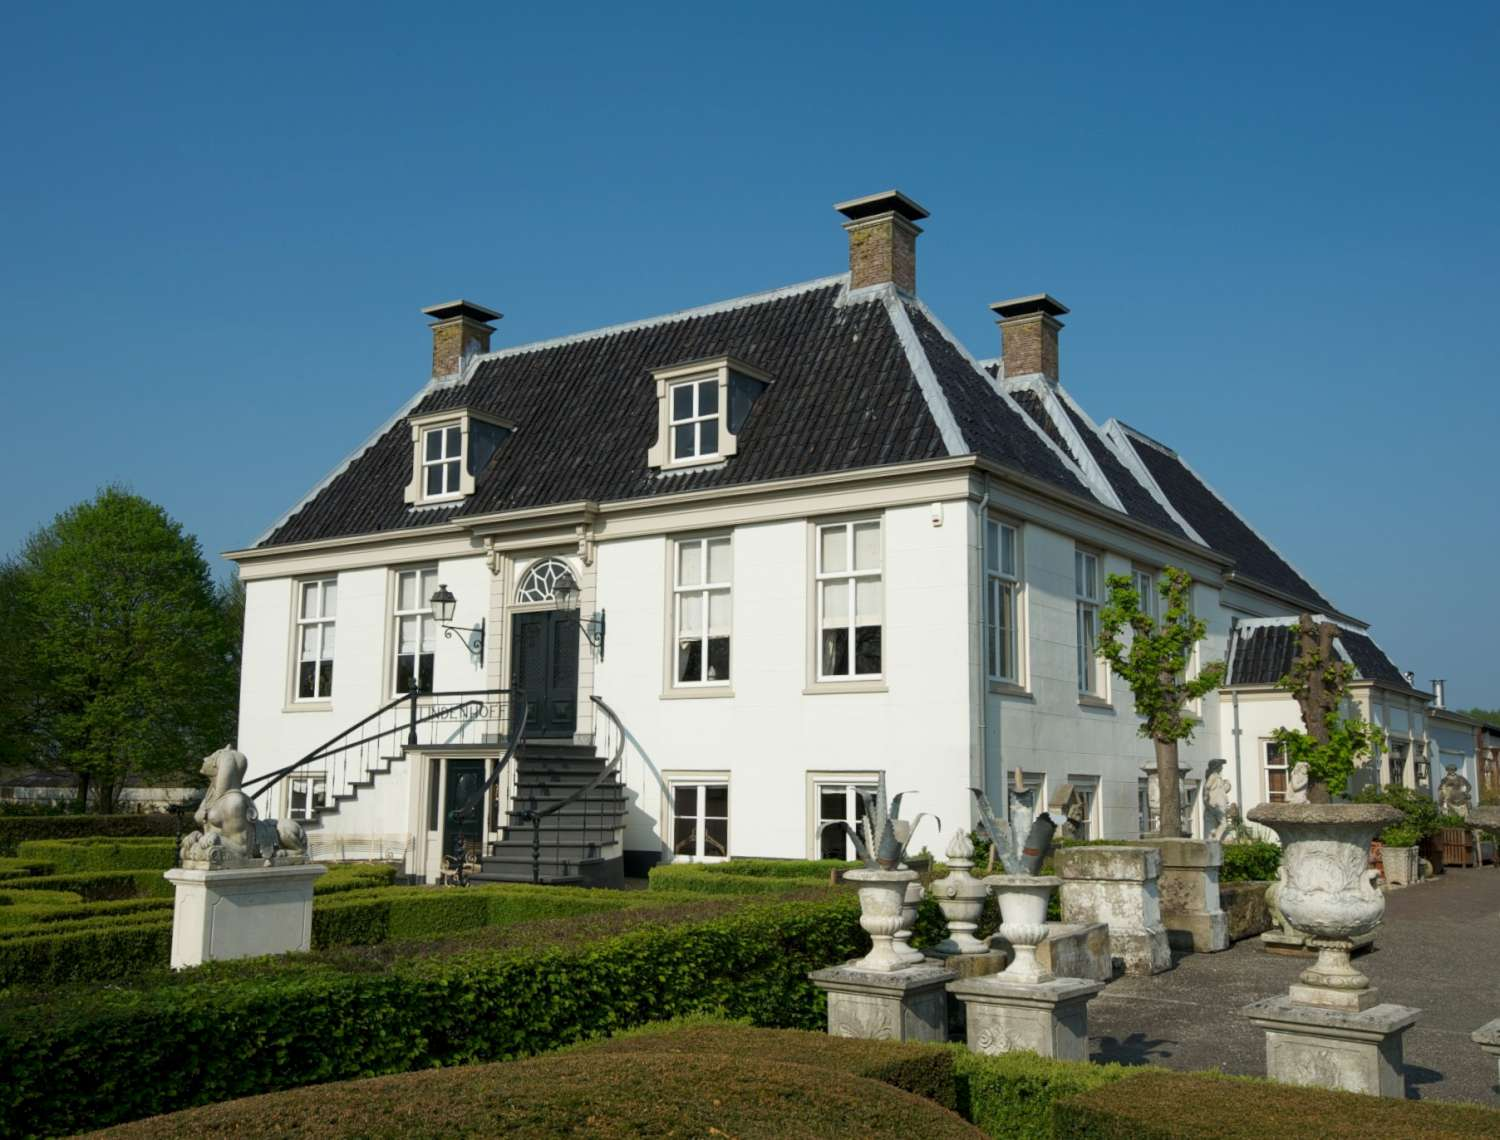 The historic building of the Lindenhof estate